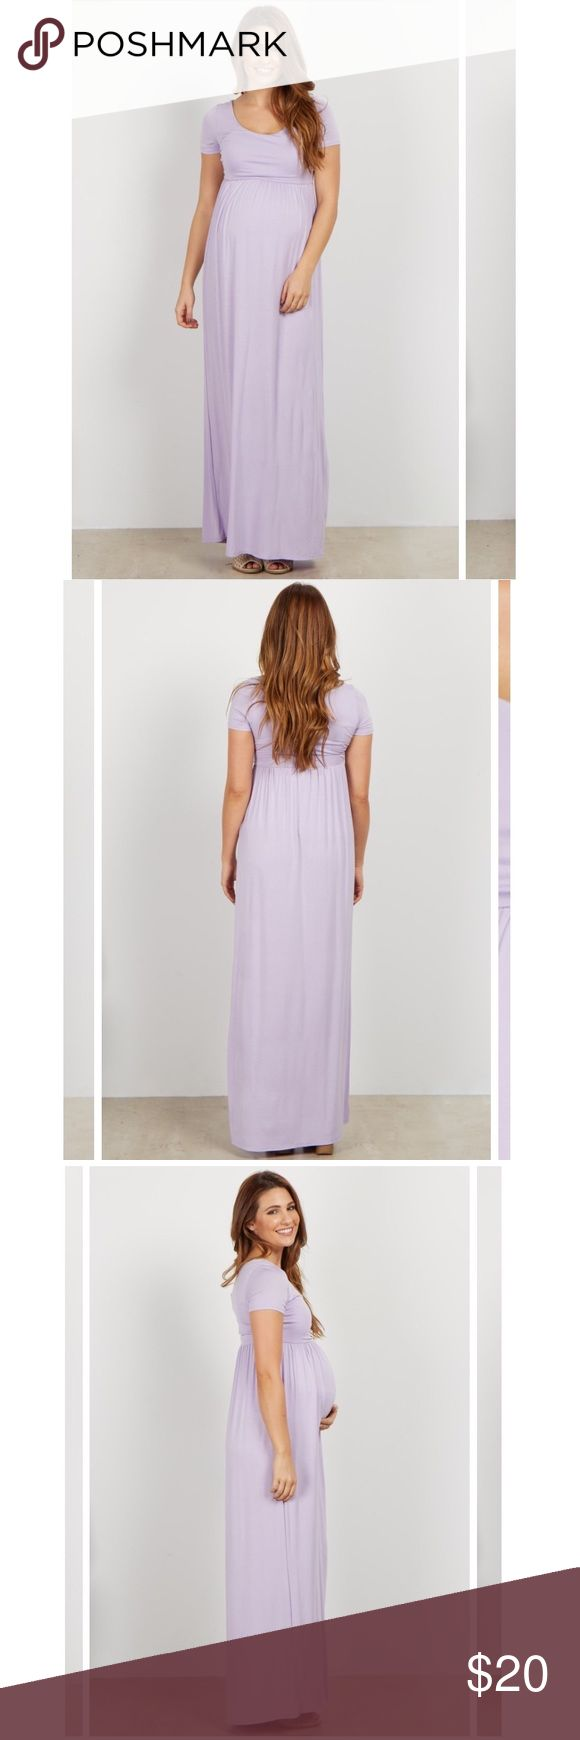 Pink Blush Maternity Maxi EUC, no signs of wear. Super cute and comfy maxi dress that can be worn throughout a pregnancy and after, very flattering as non-maternity style as well. Pinkblush Dresses Maxi